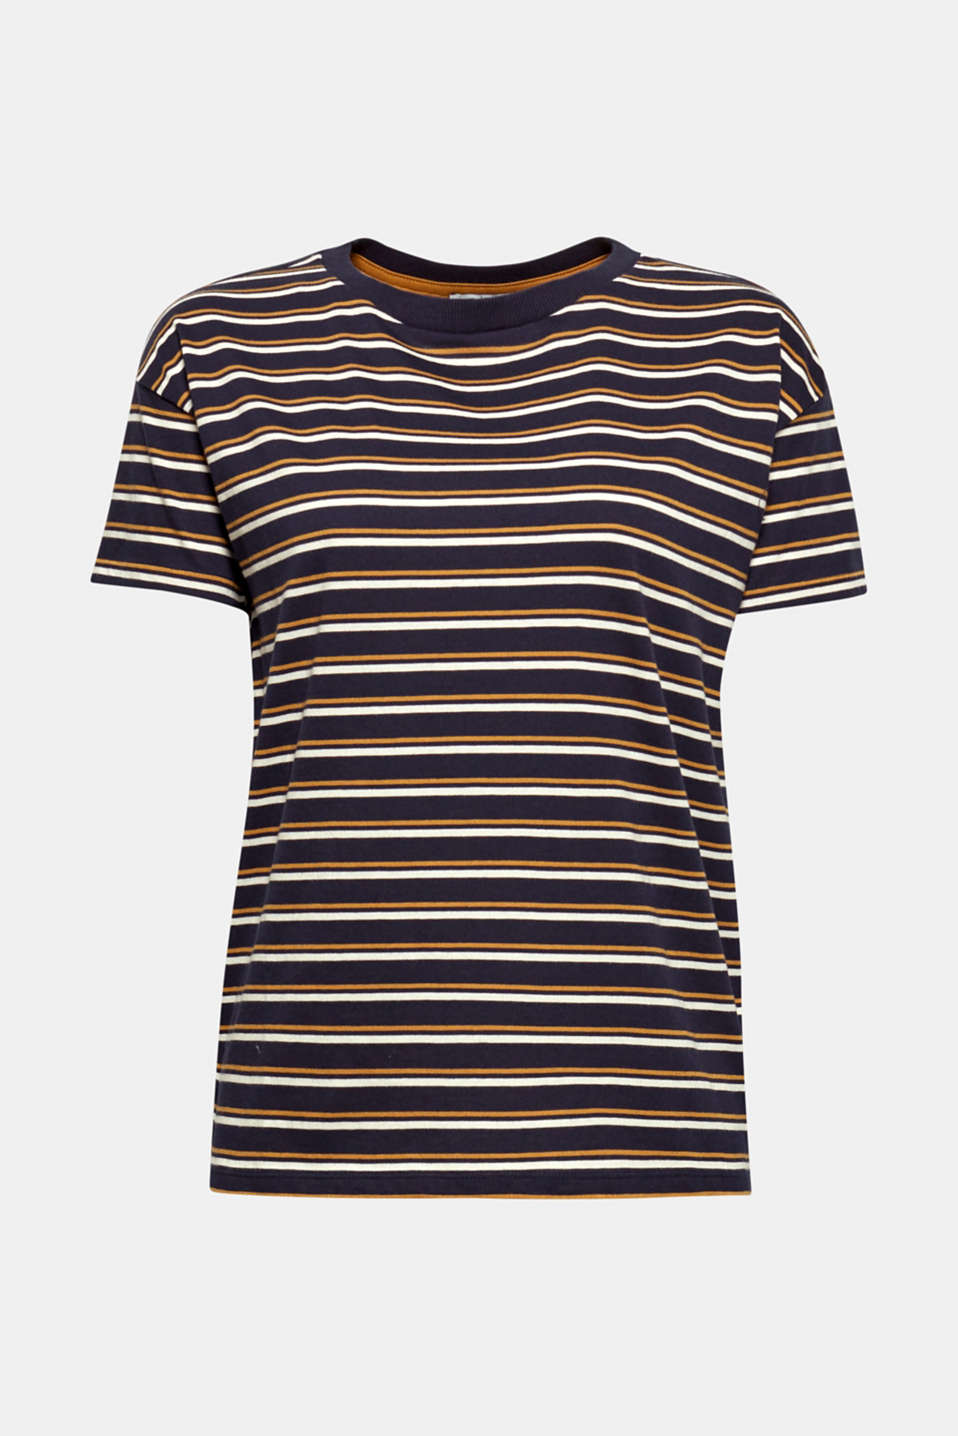 Striped T-shirt, 100% cotton, NAVY, detail image number 6